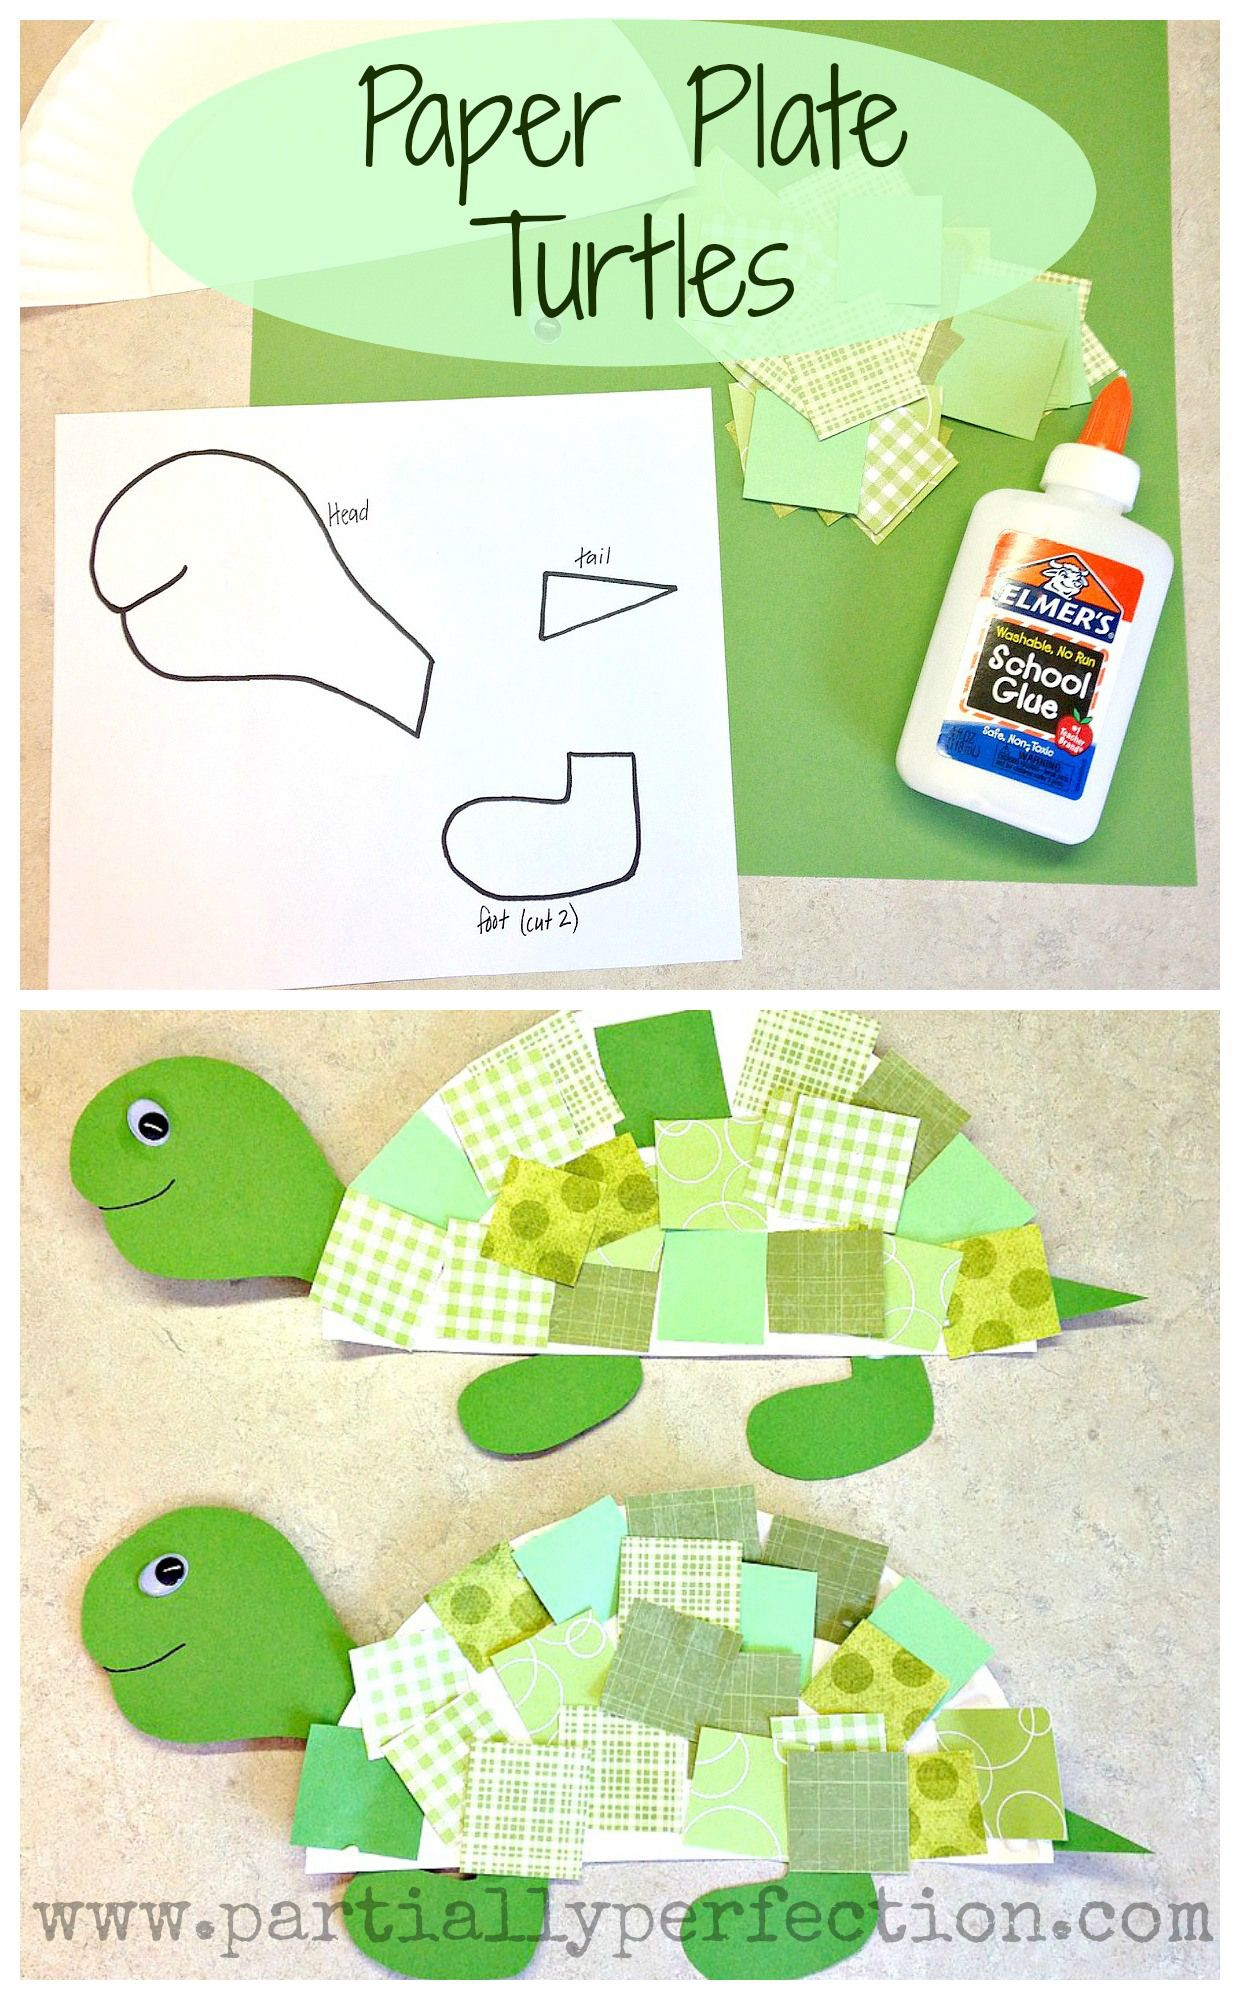 Paper Plate Turtles Template Included